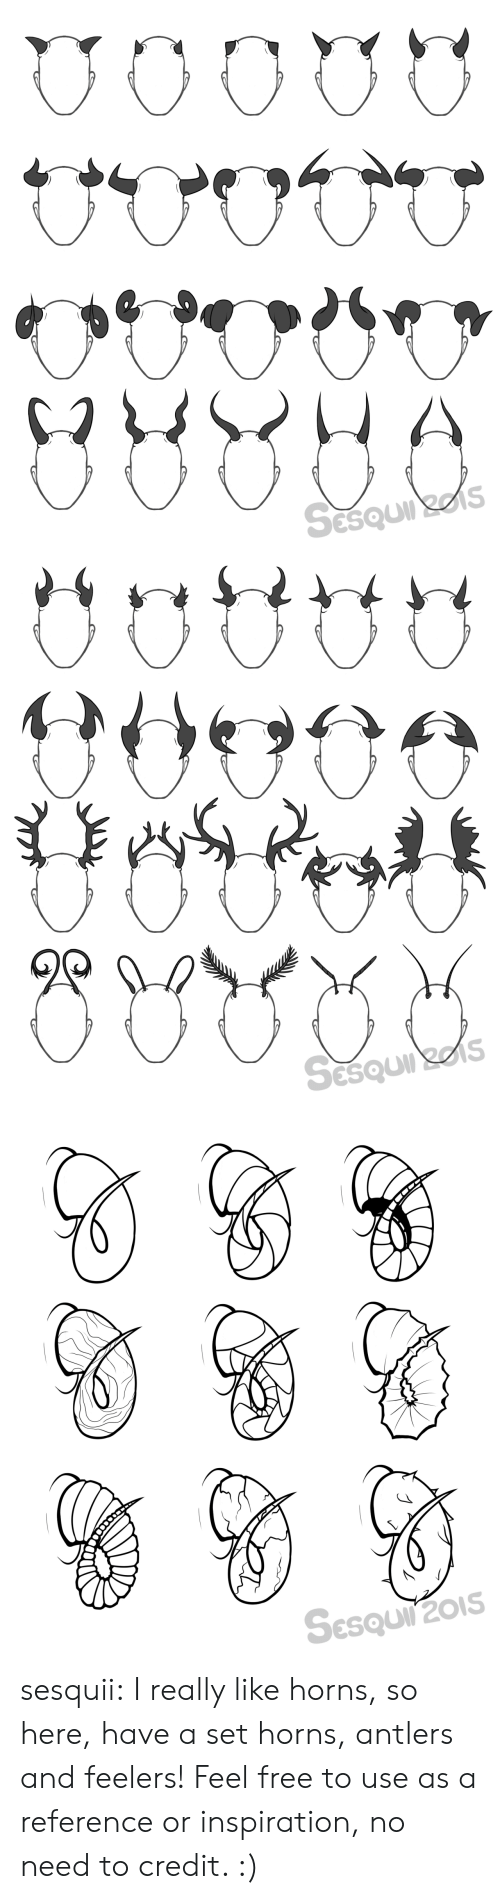 antlers: Sesquirzes   Sesquirzes   SESQUIT201S sesquii: I really like horns, so here, have a set horns, antlers and feelers! Feel free to use as a reference or inspiration, no need to credit. :)